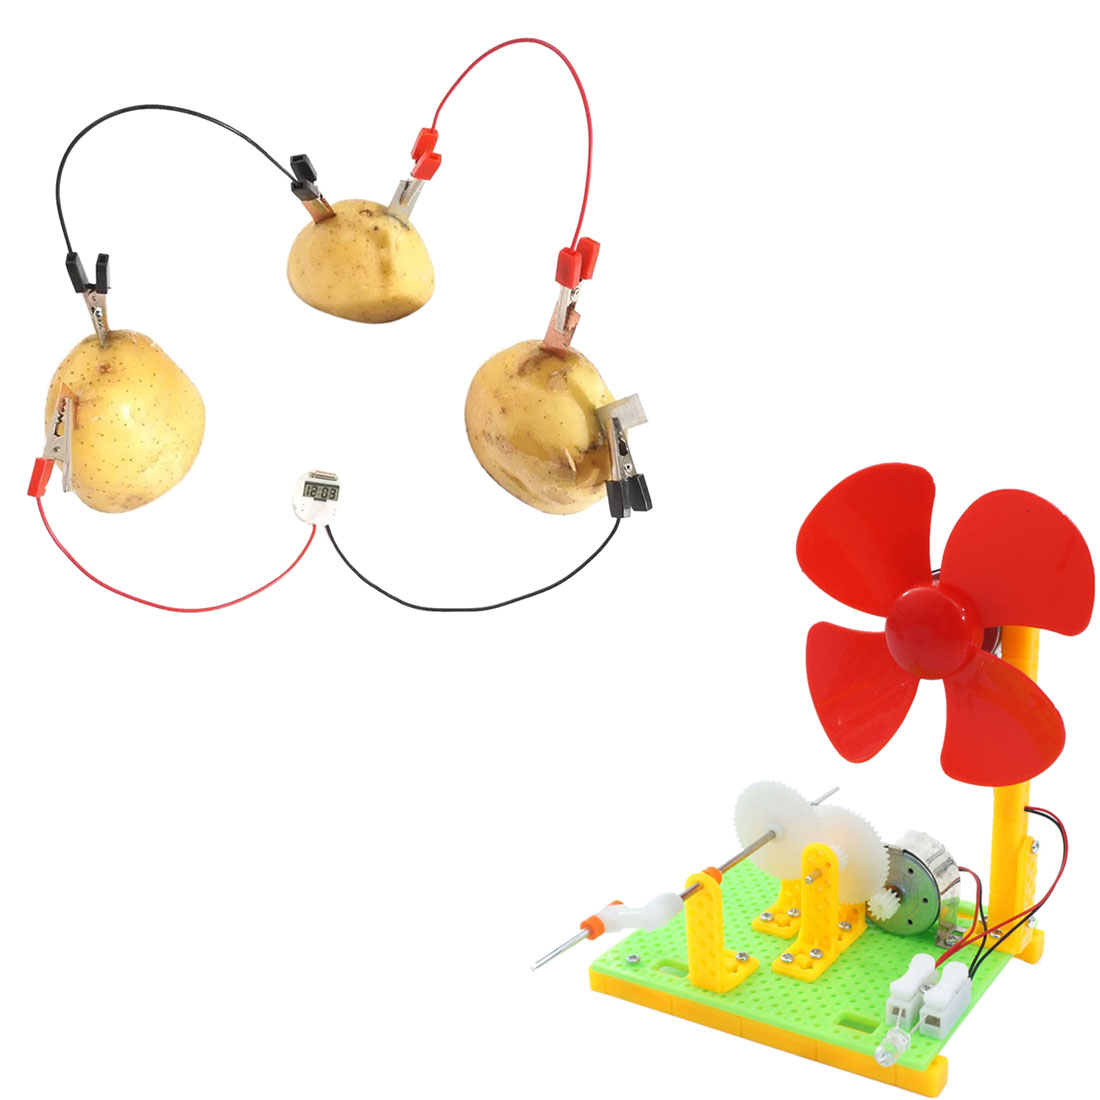 Education Subject Skelang Fruit Battery Science Experiment Kit with Electronic Clock for DIY Home Teaching Toy School Science Project